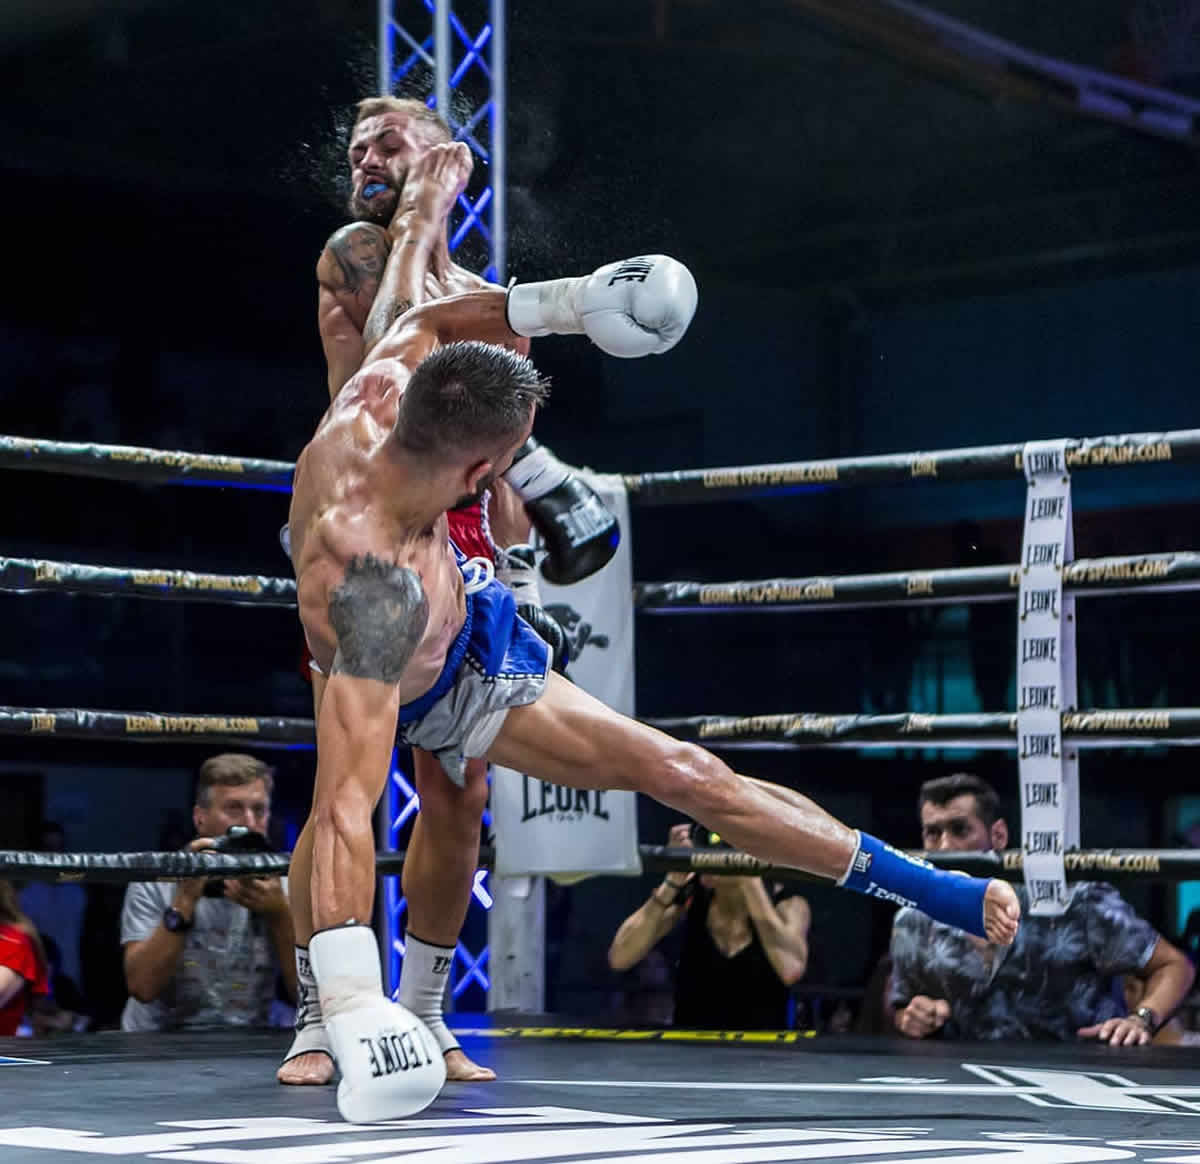 Antonio Campoy crowned WKN European Lightweight champion at Fight